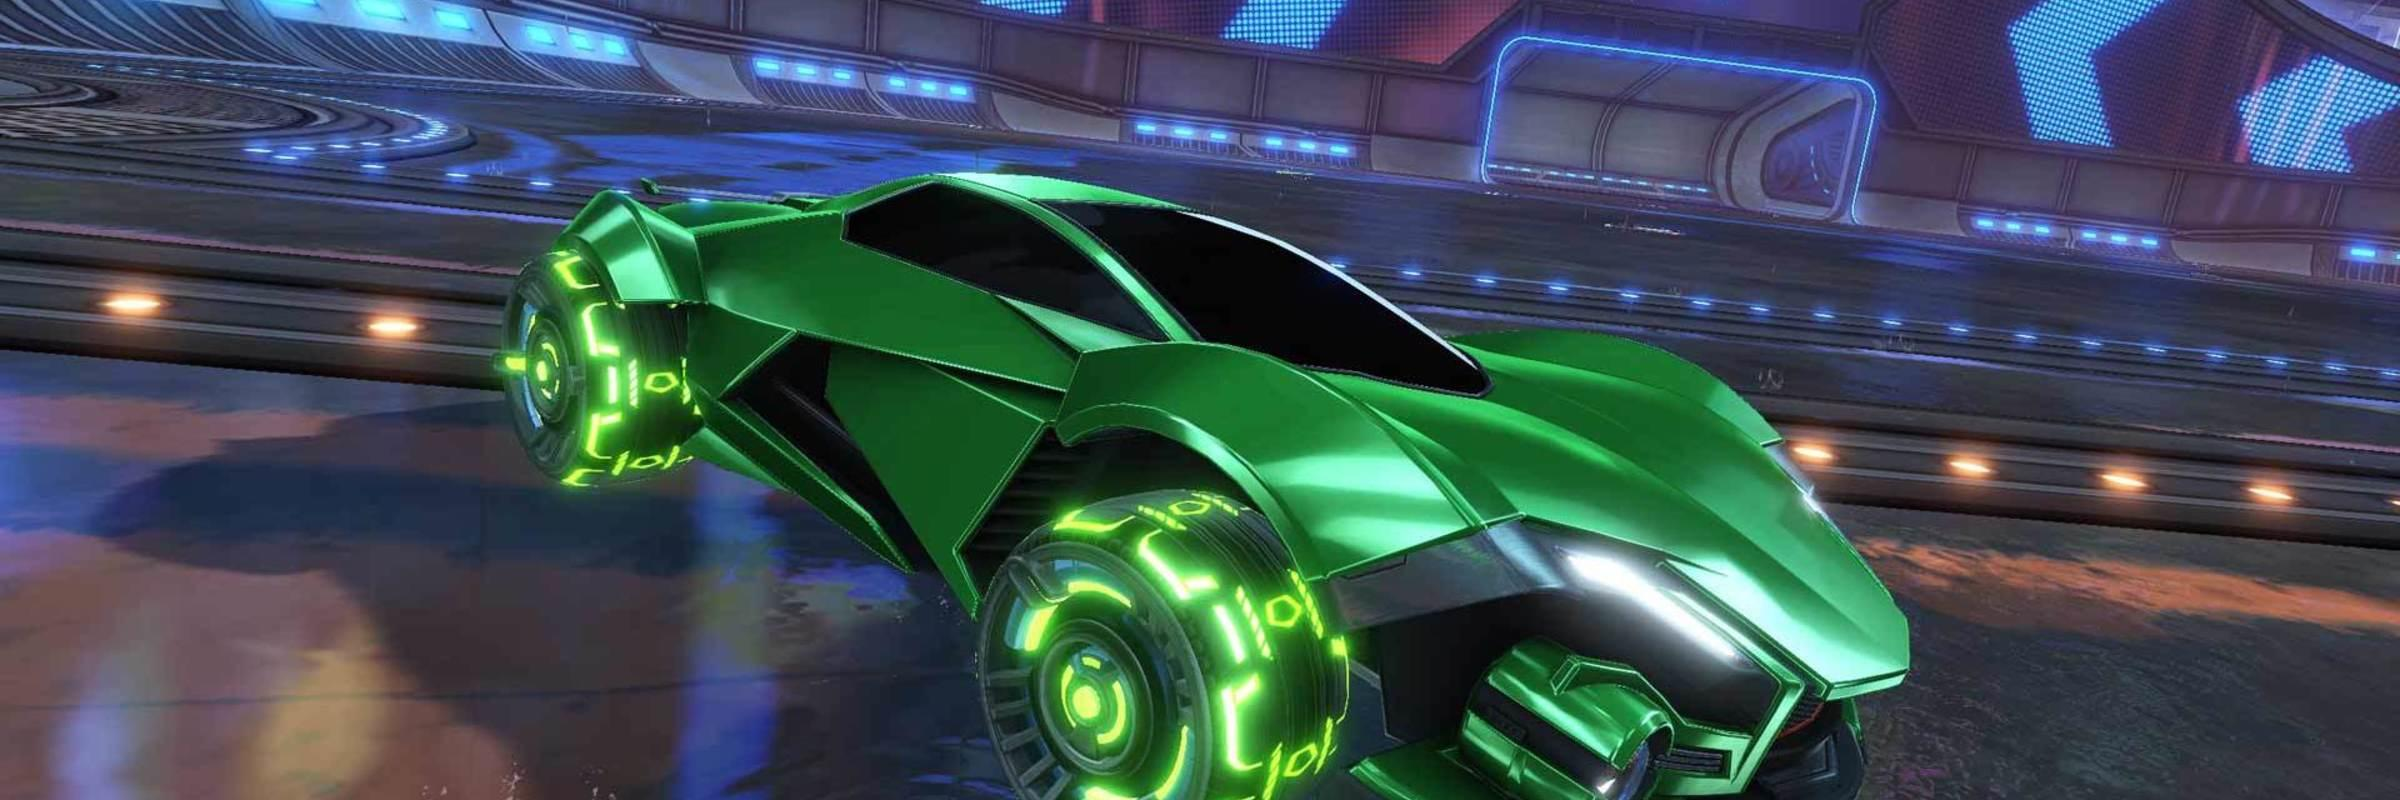 RLCS World Championship Tickets Are On Sale! Image